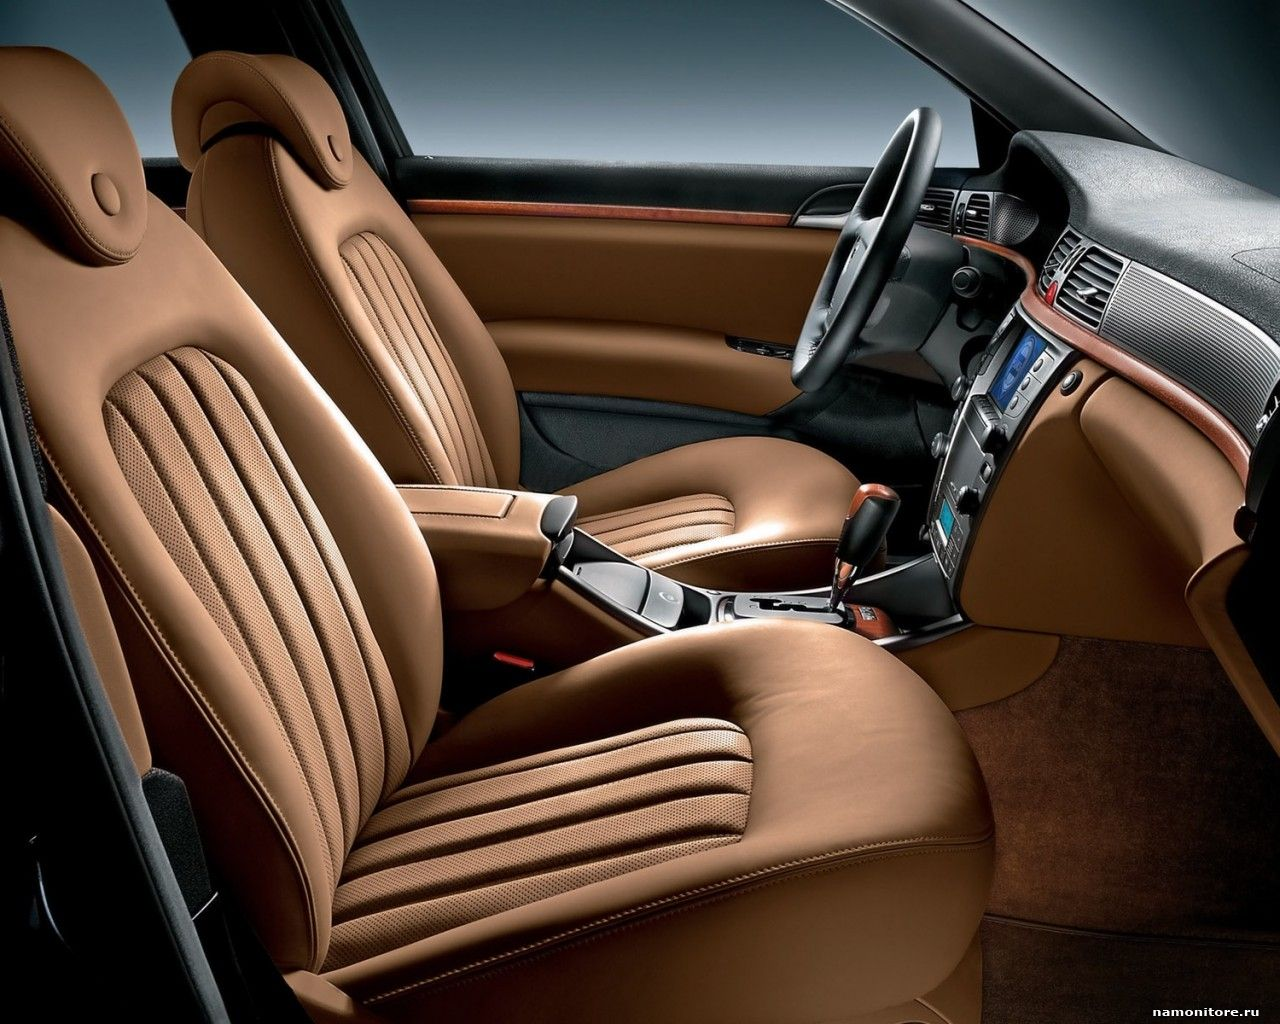 Superb Leather Car Interior 8 Cars With Brown Leather Interior Car Interior Upholstery Custom Car Interior Best Car Interior